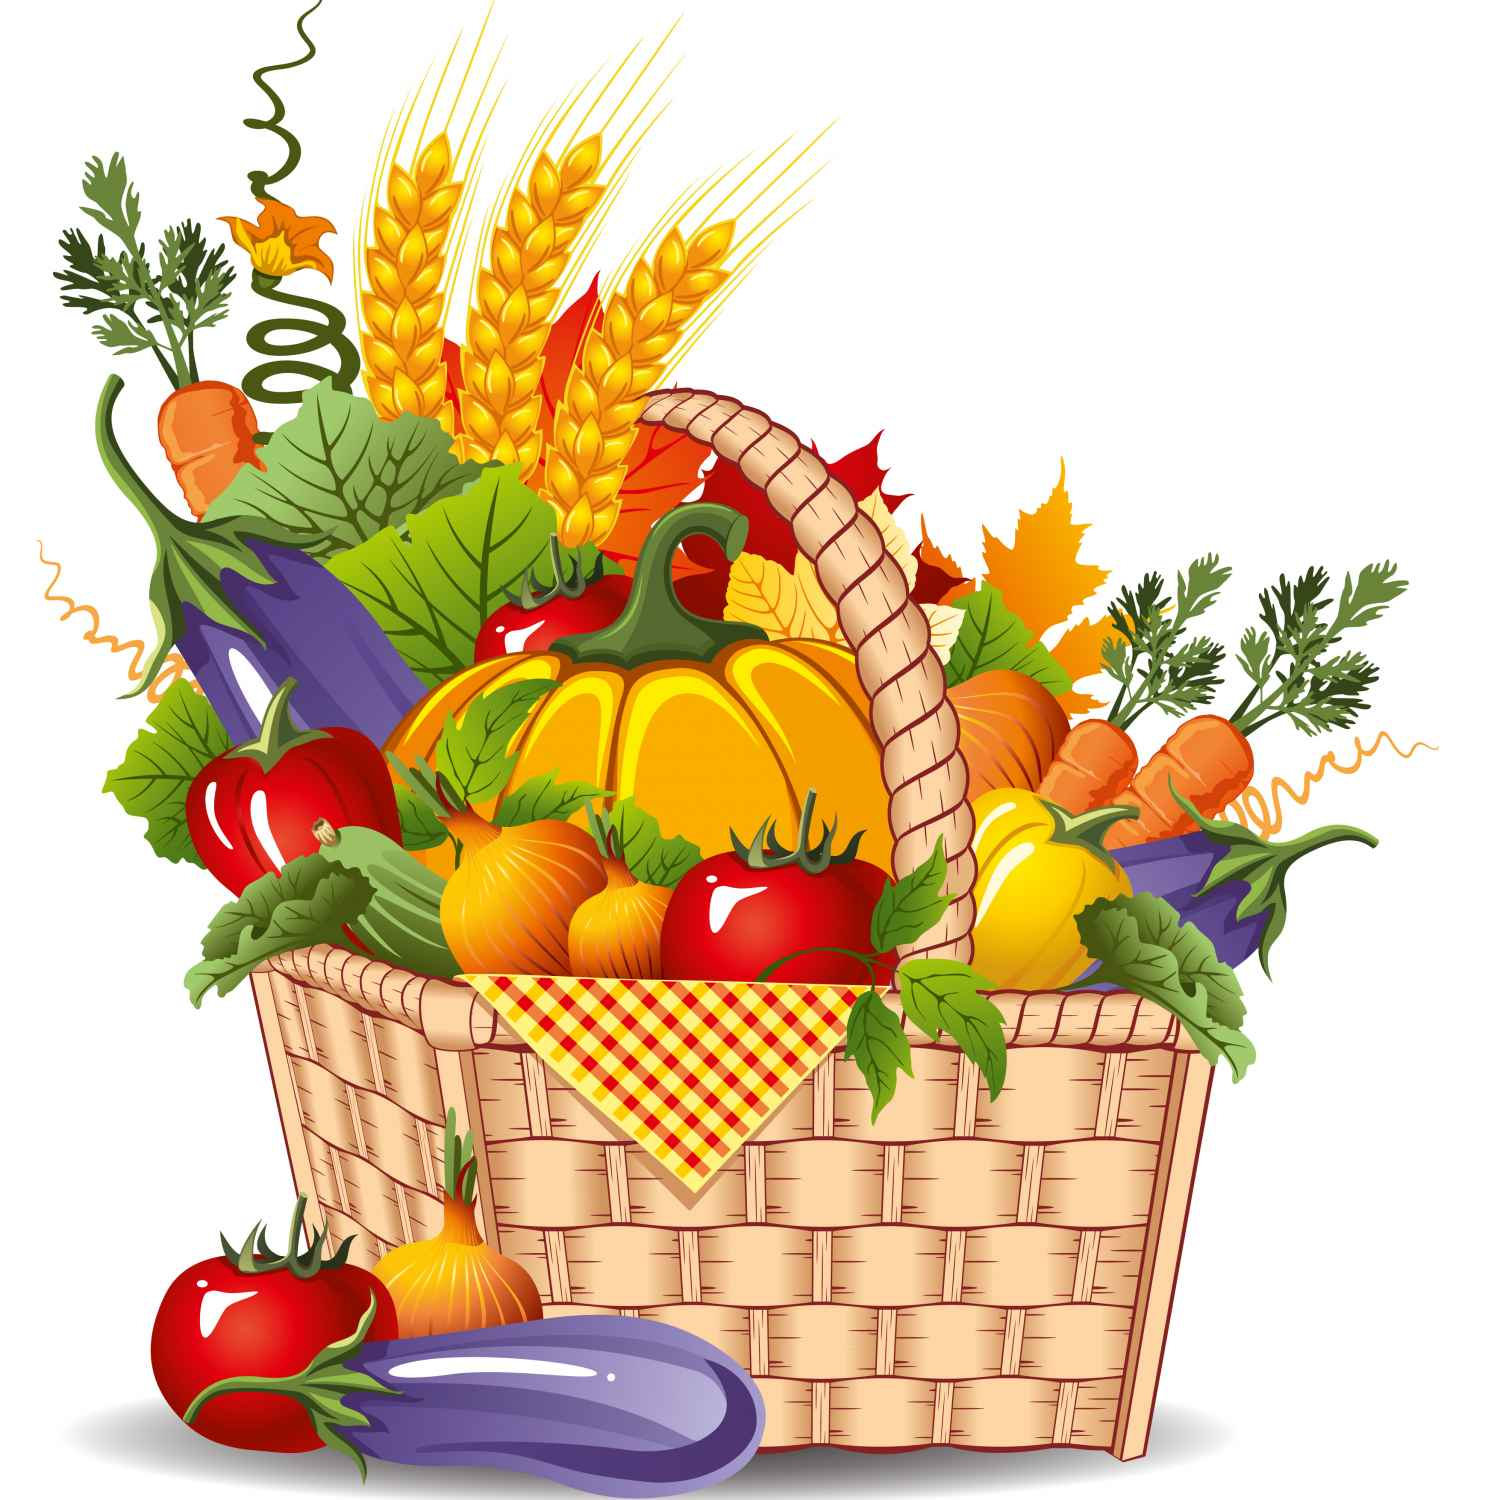 1500x1500 Harvest Basket Clip Art, Vegetable Basket Clip Art